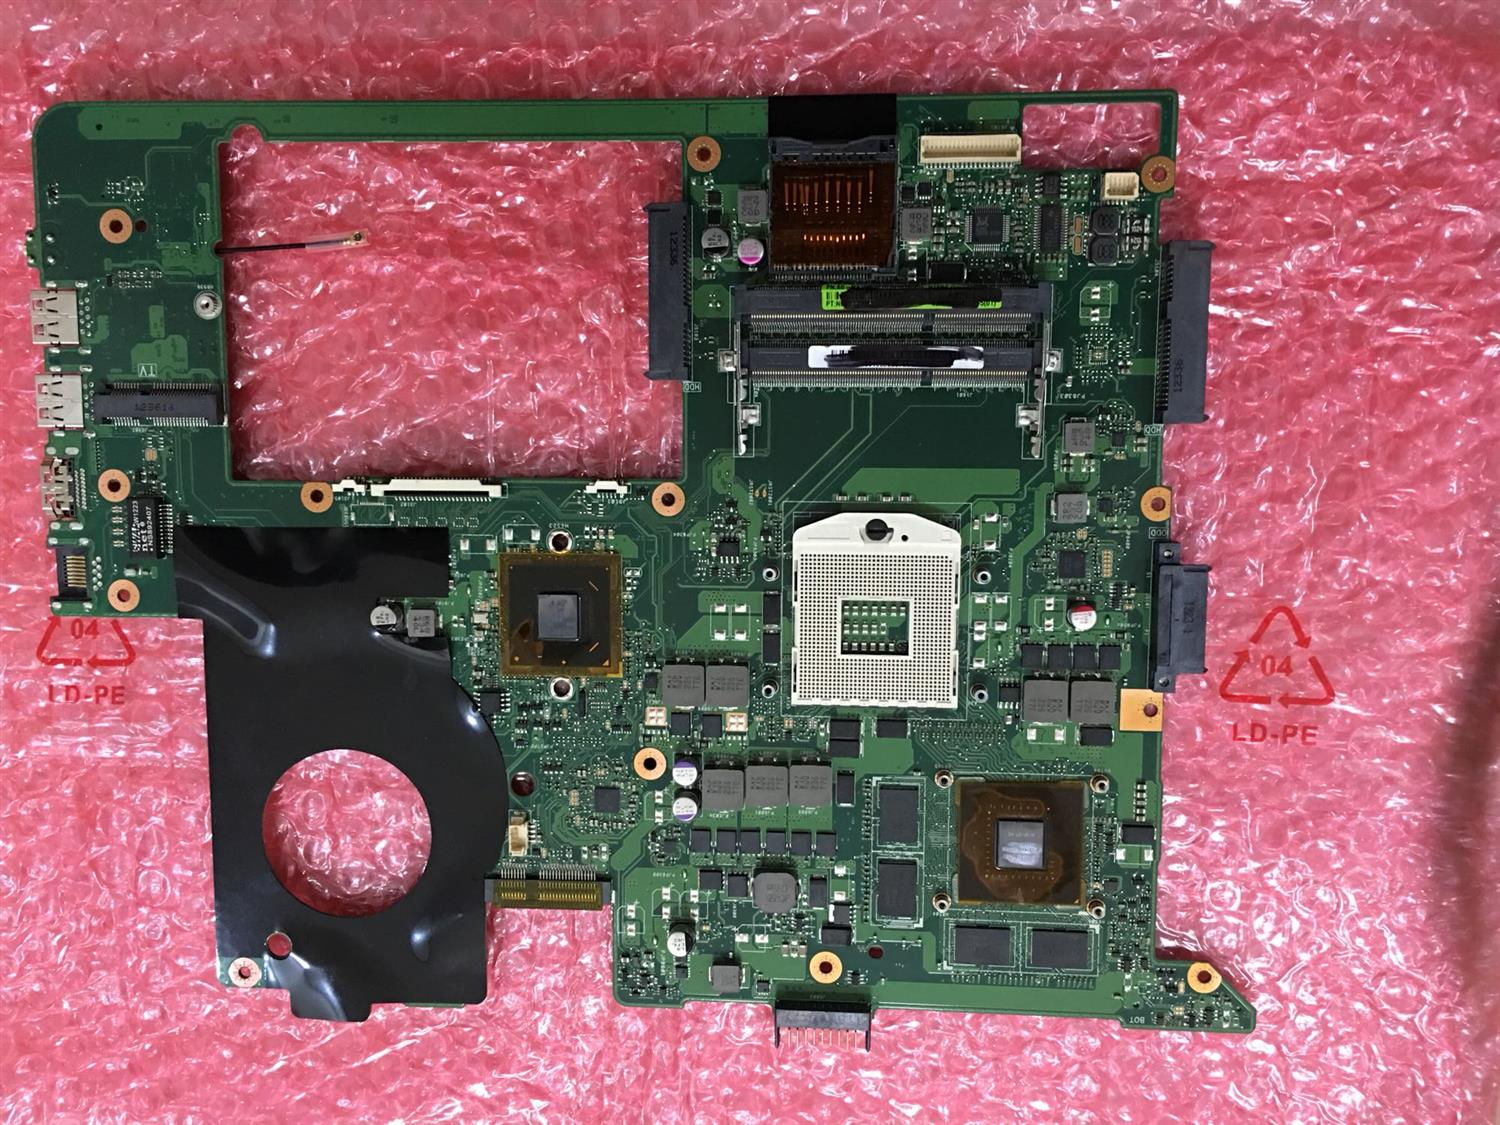 Used,N76V REV 2.2 suitable for asus N76V N76VZ N76VJ N76VB N76VM laptop motherboard for asus n76vj n76vb n76vz n76vm n76v rev 2 0 laptop motherboard 2gb usb3 0 n14p ge op a2 gt740m fully tested